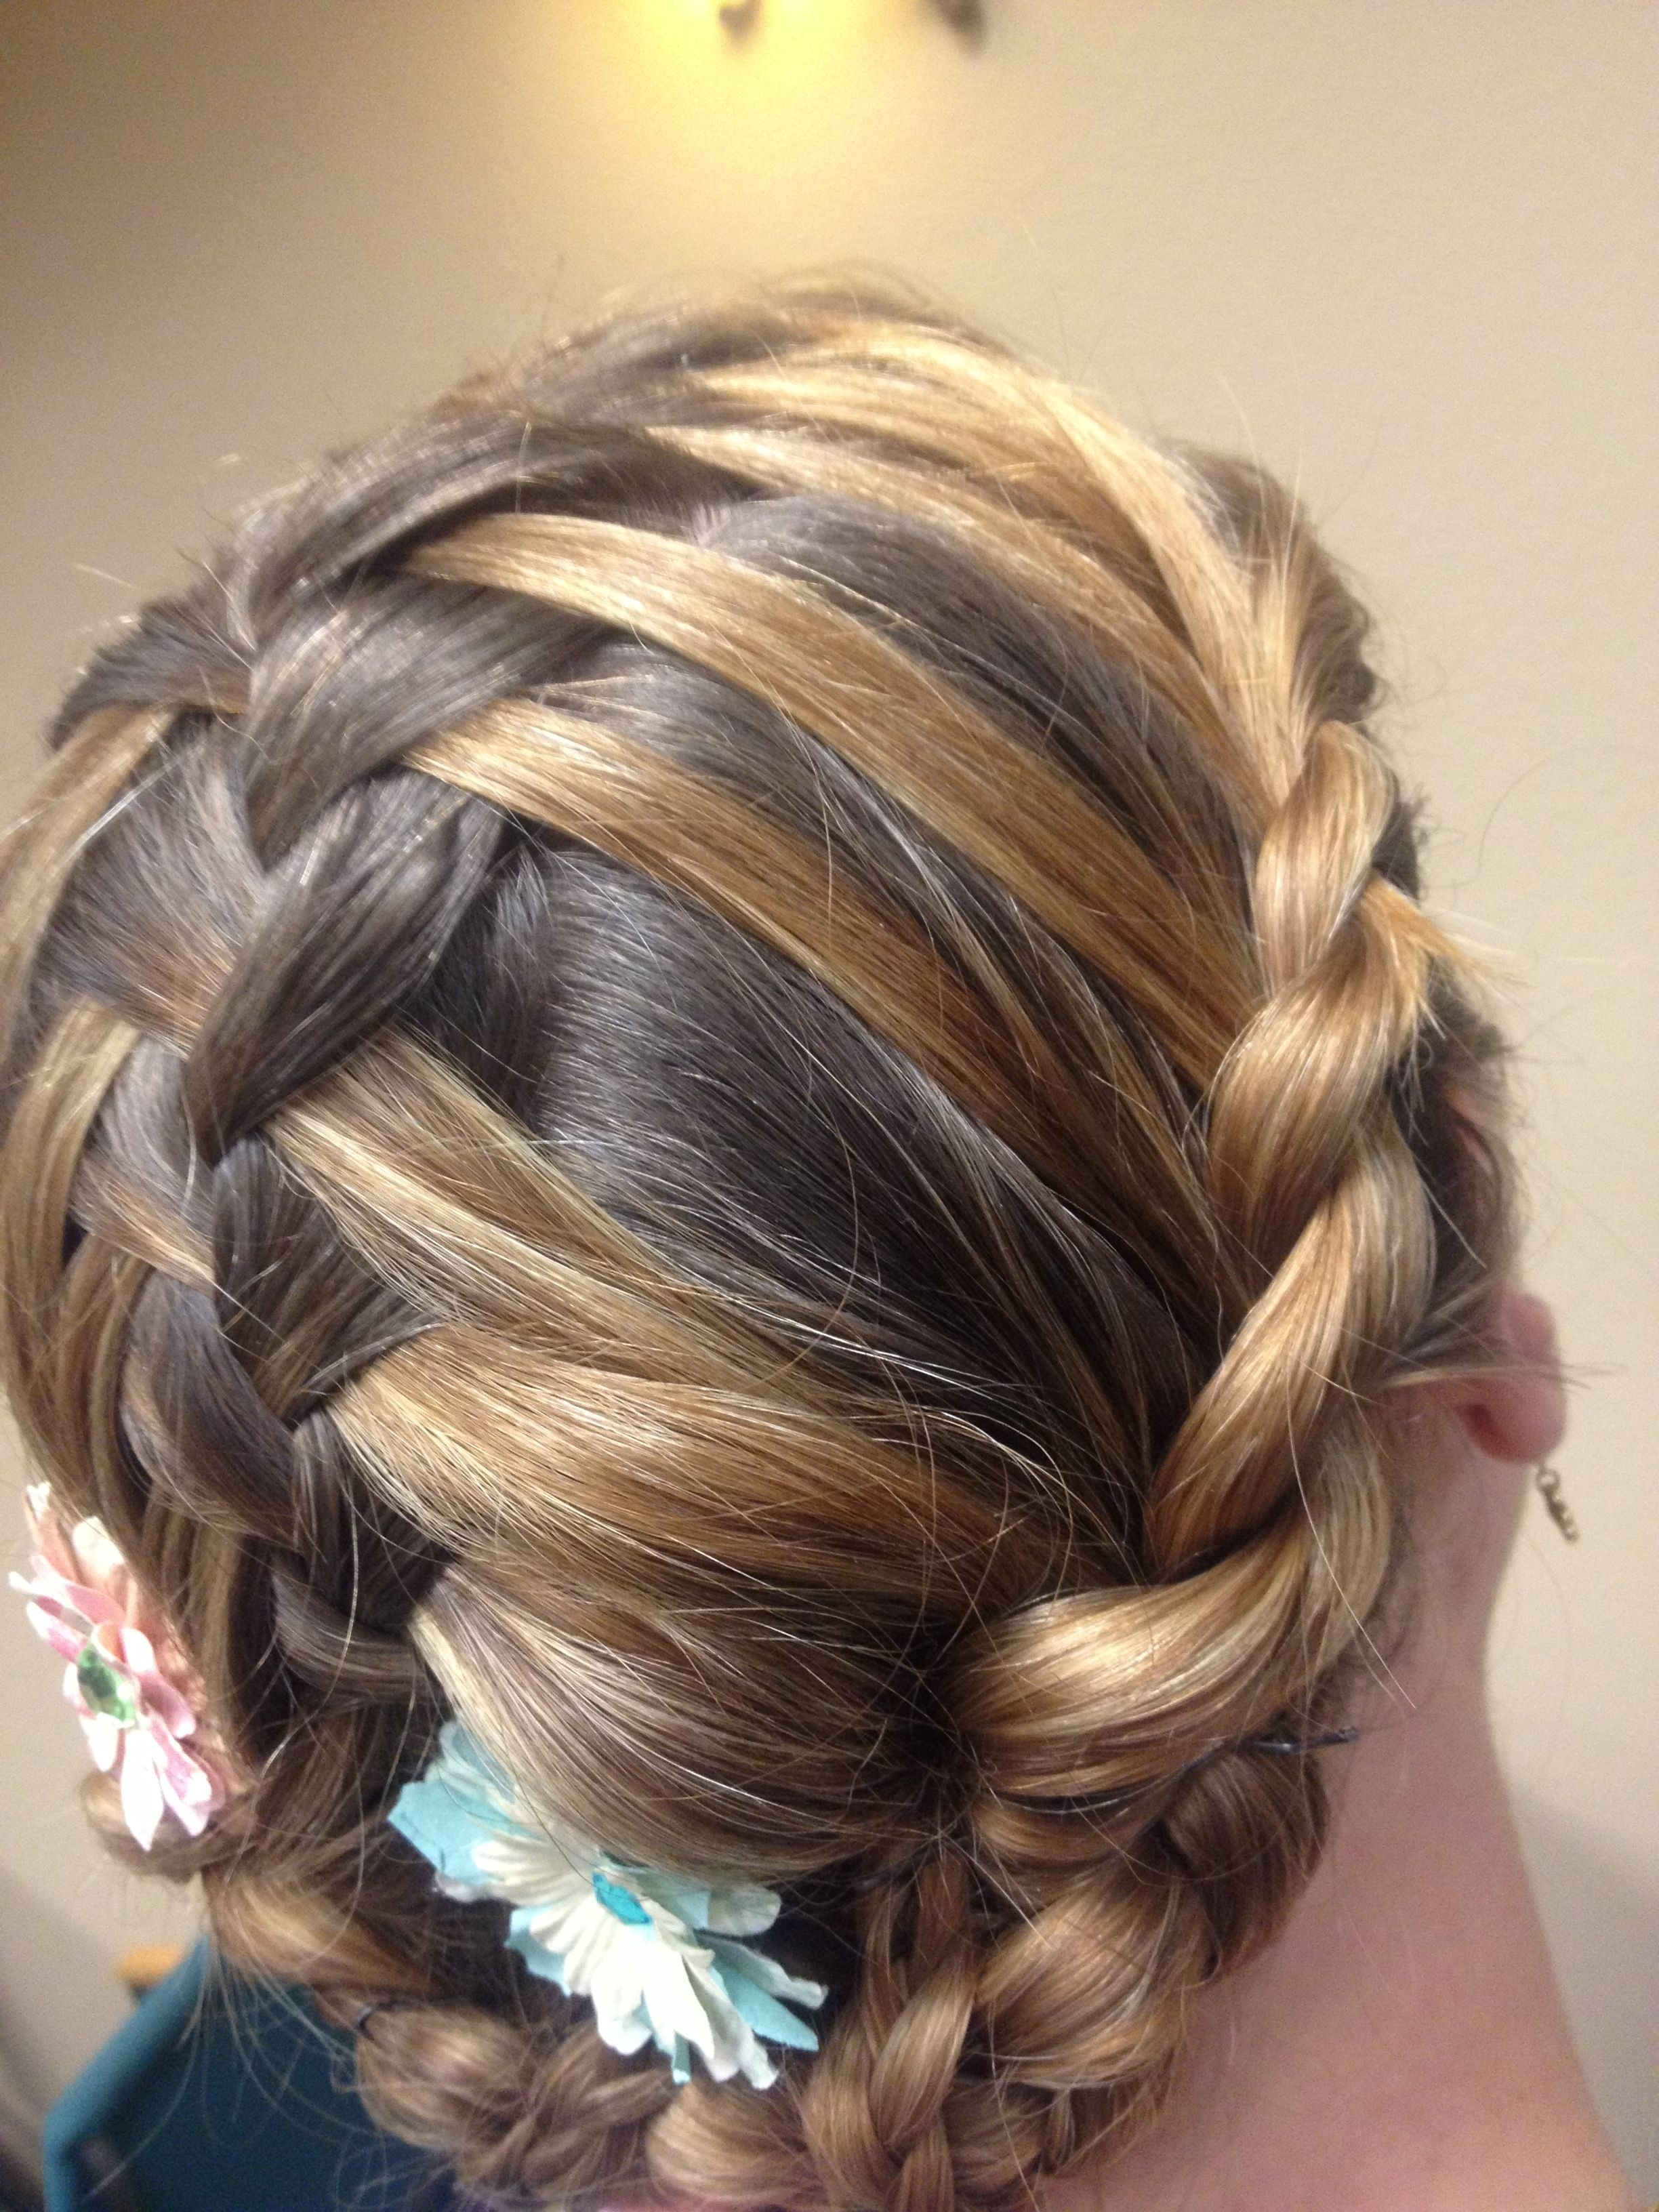 Double Waterfall Braid Down The Center, Then Incorporated Into Side Throughout Preferred Chunky Two French Braid Hairstyles With Bun (View 3 of 15)